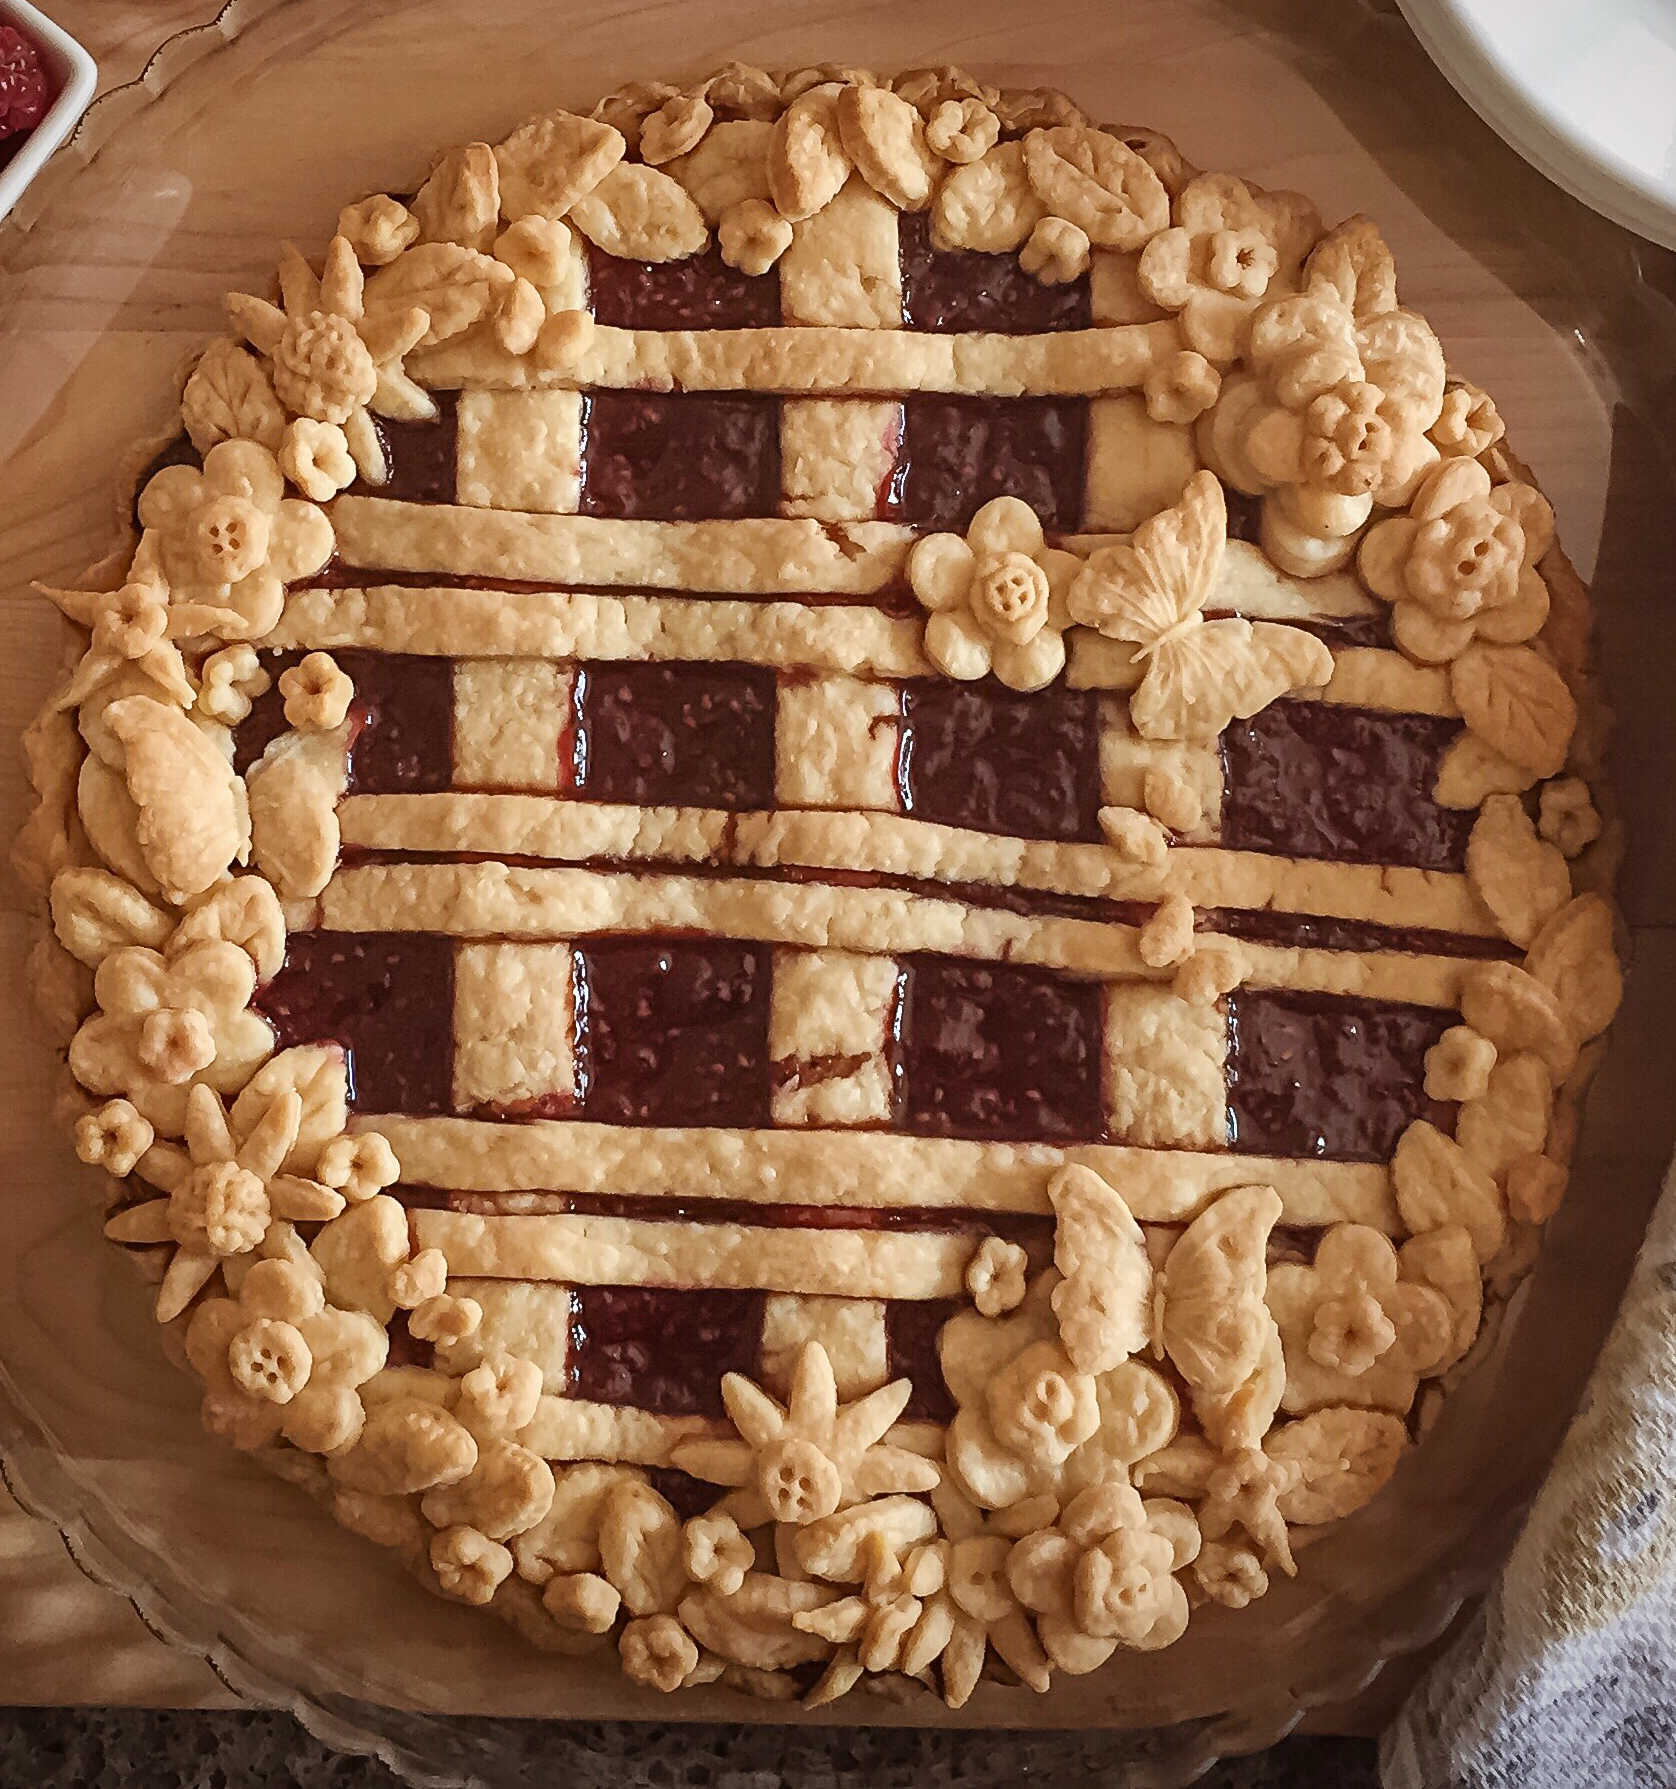 a top-down view of an intricately decorated pie with a double lattice crust and flower and butterfly cutouts around the edges and on the lattice